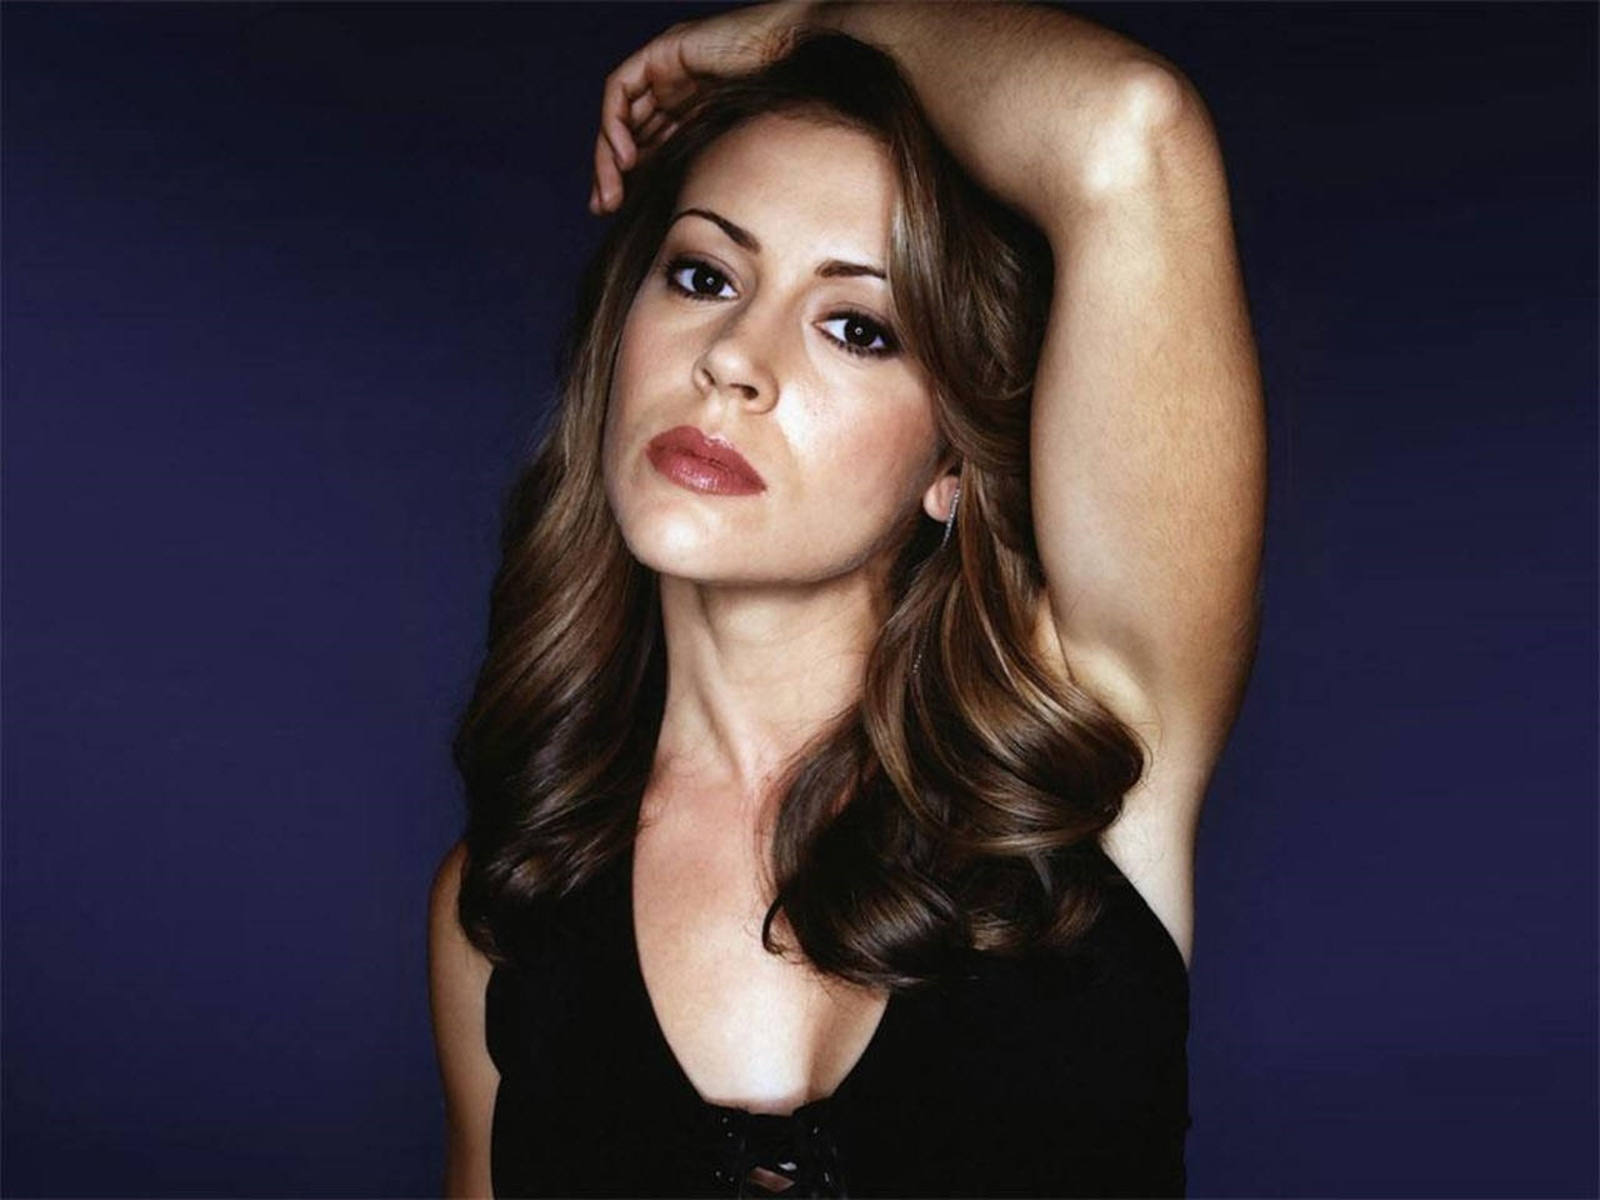 Alyssa Milano Leaked Photos alyssa milano